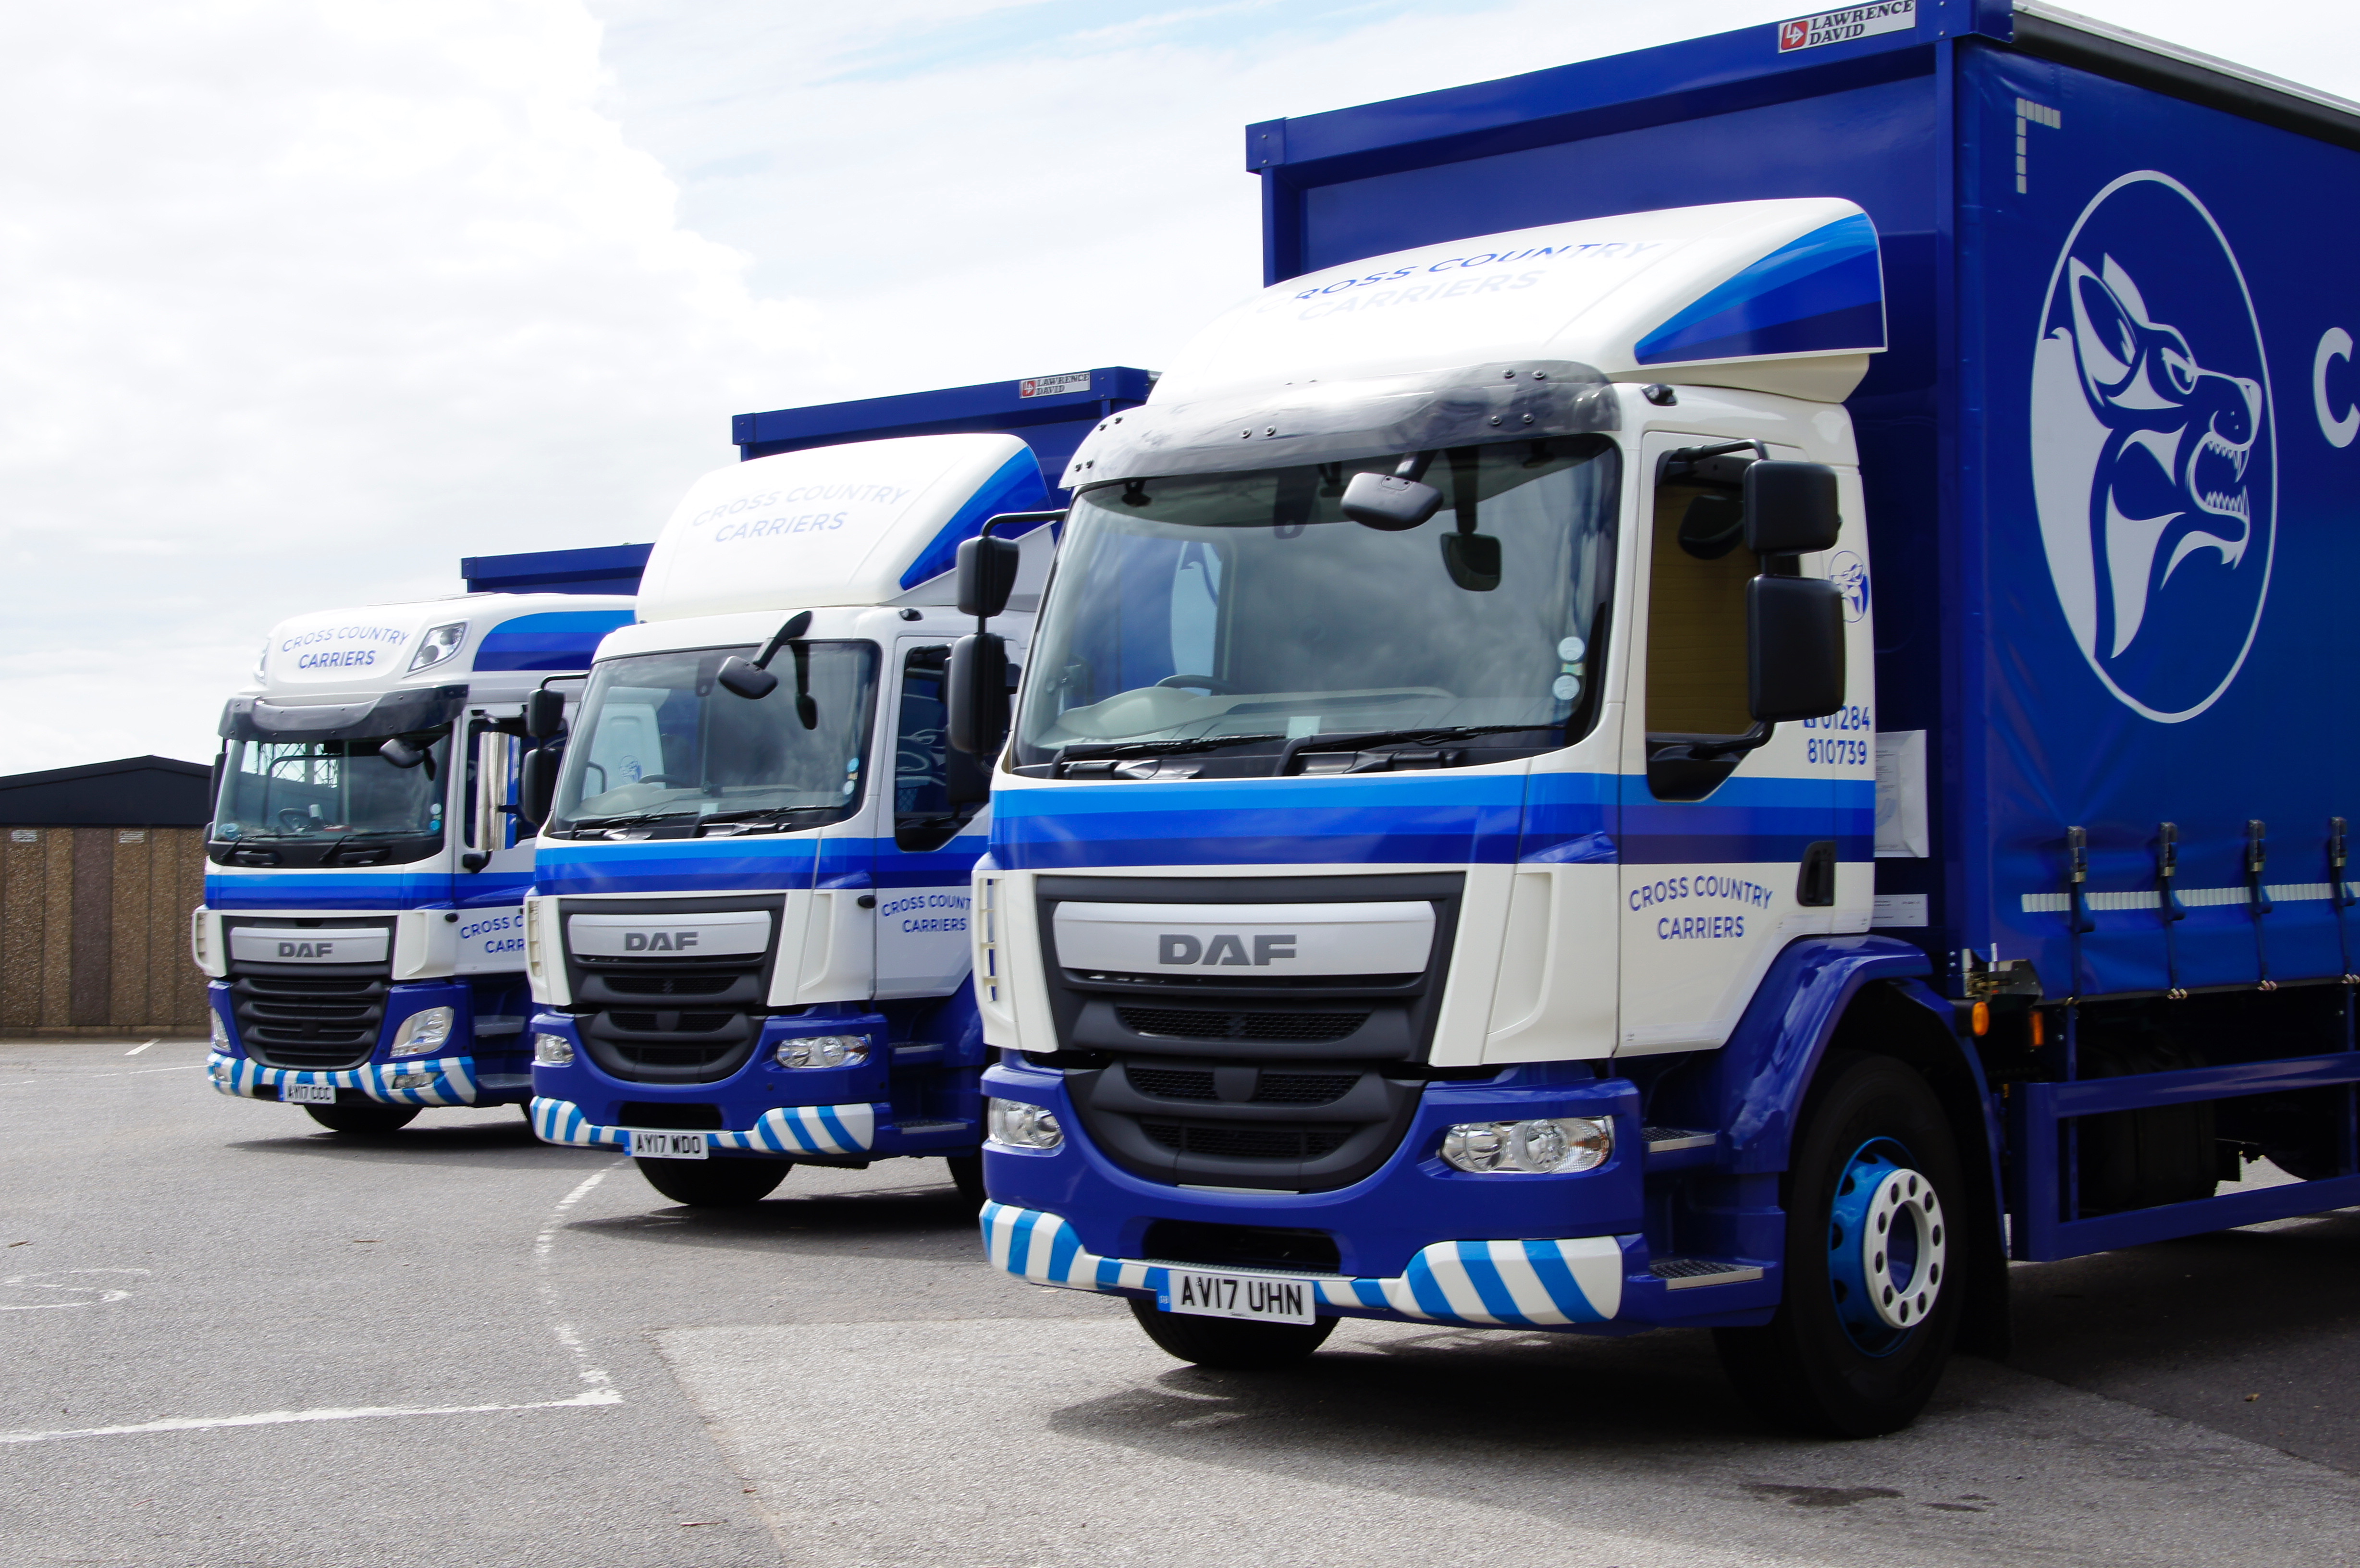 Pallet Delivery Vehicles